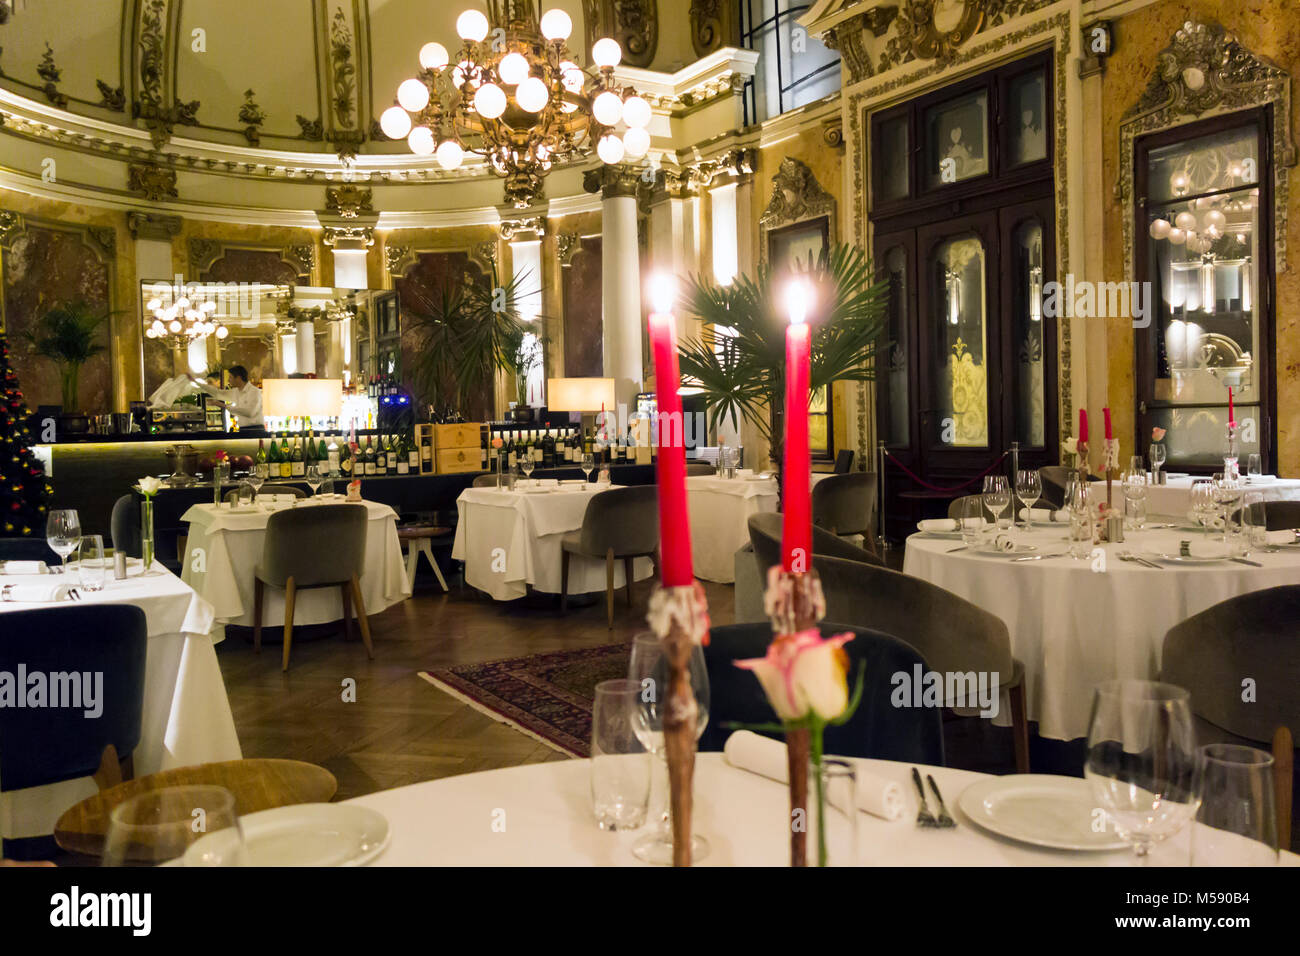 Interior of  the Salon 1905, a gourmet restaurant in Belgrade Serbia - Stock Image